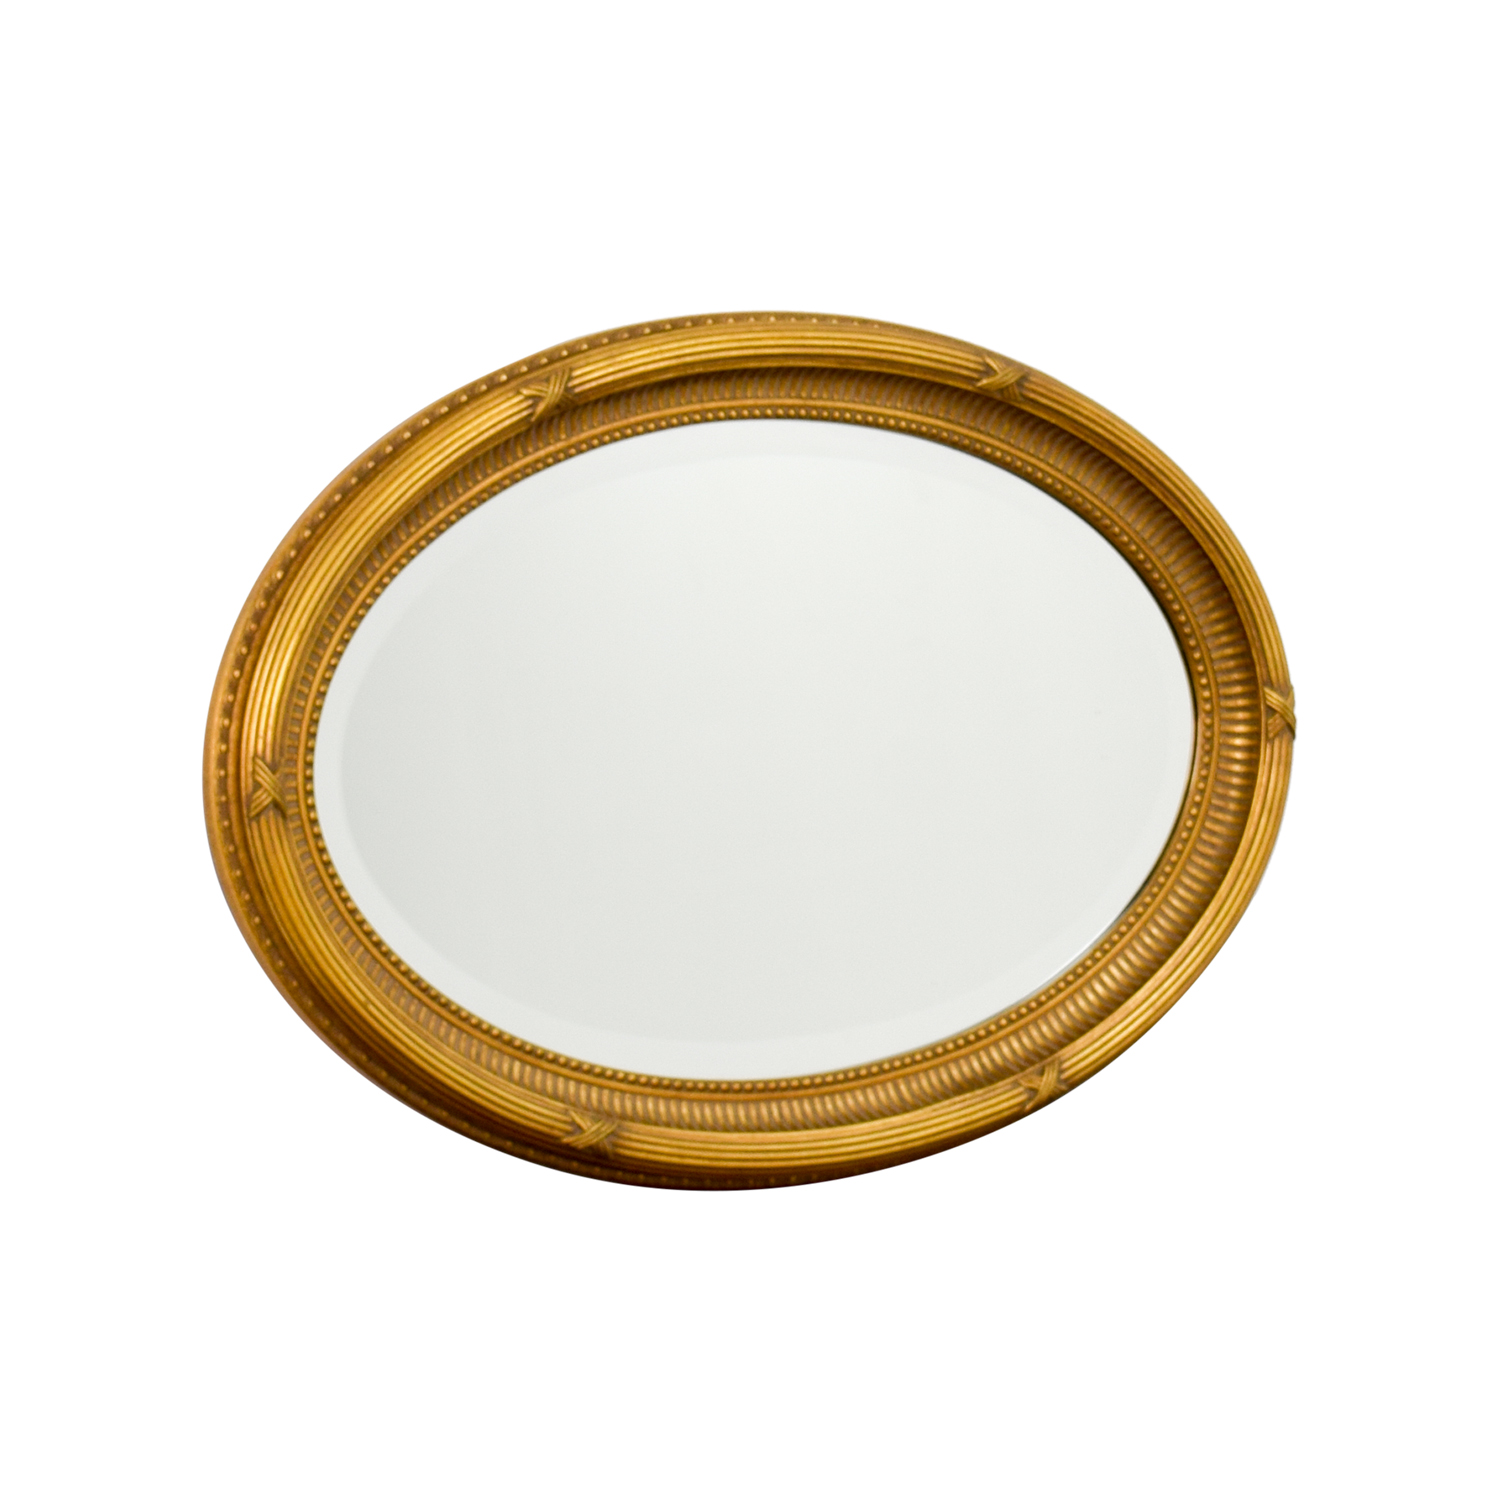 Ethan Allen Ethan Allen Oval Gold Mirror Decor